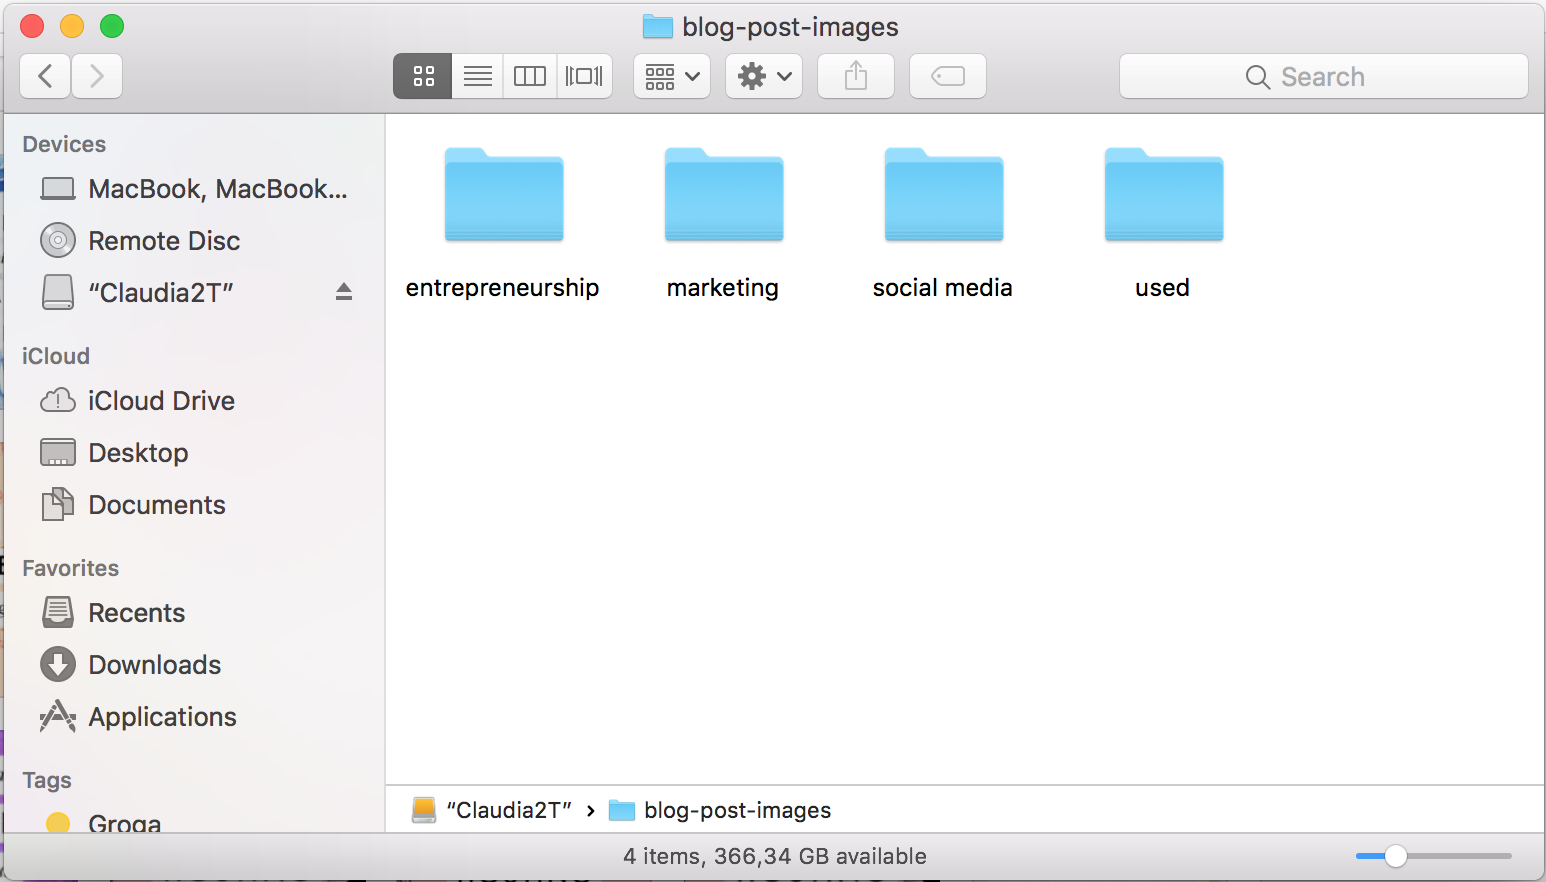 organize your blog images to save time